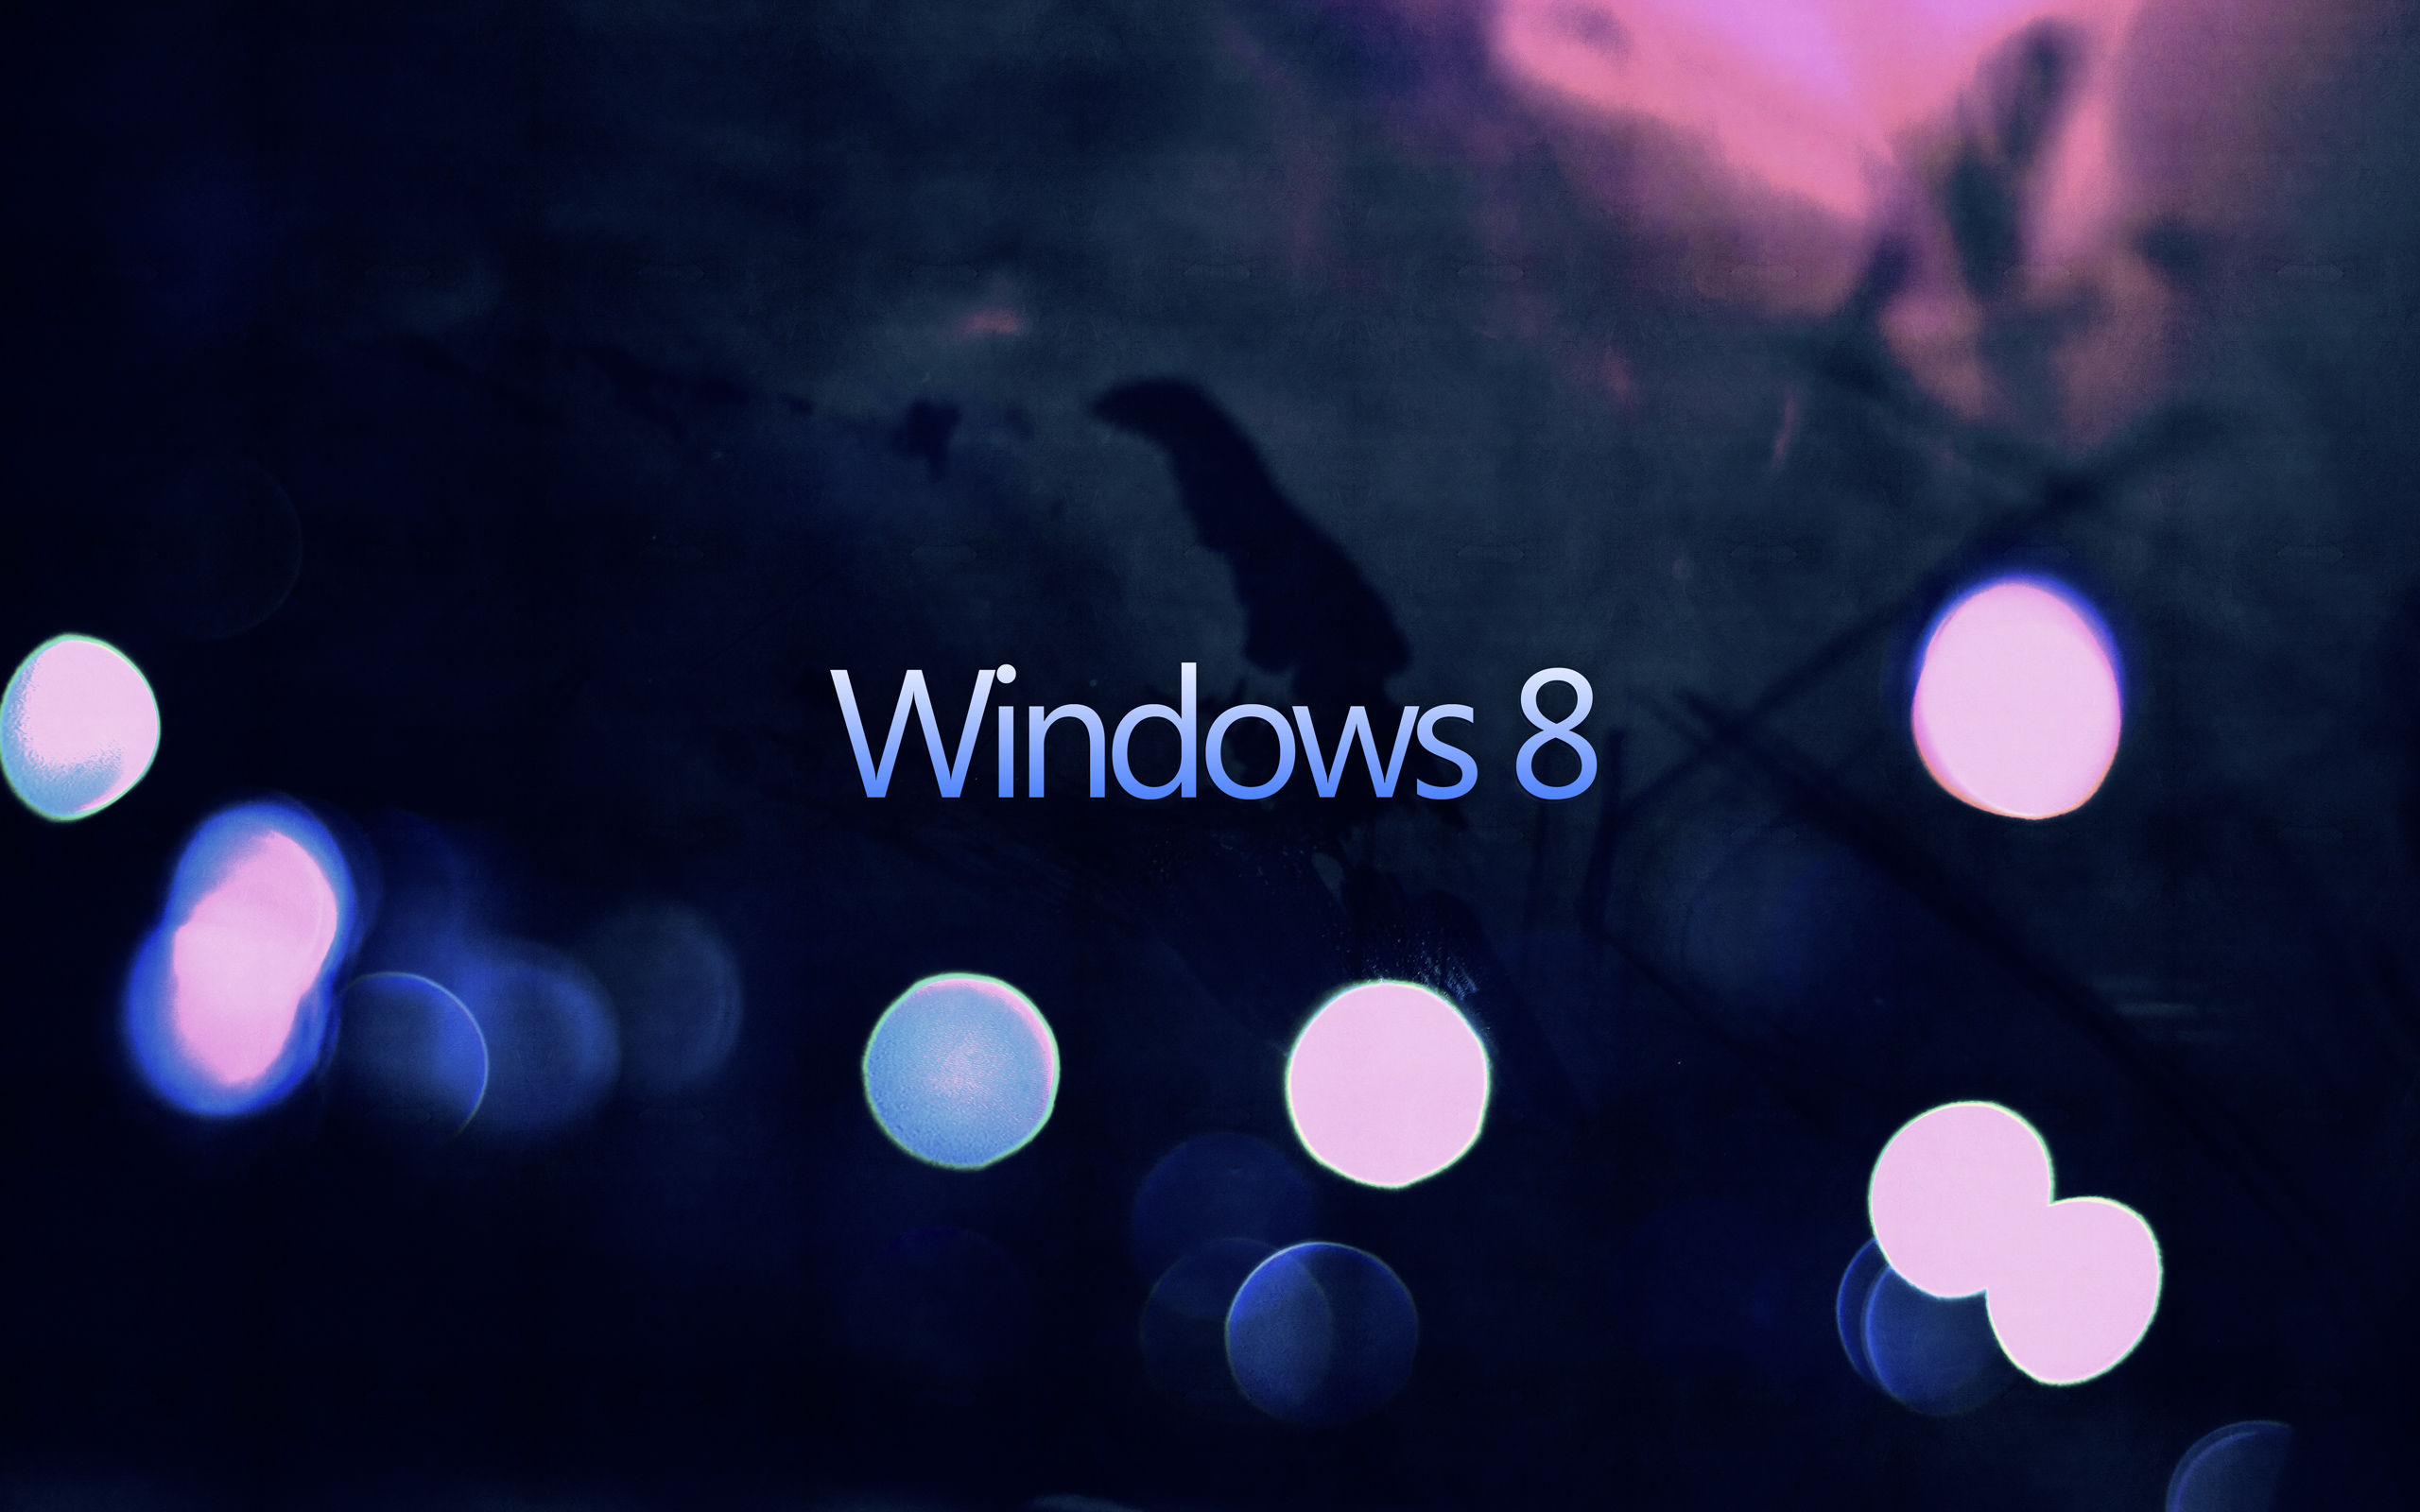 Best Windows 8 Wallpaper Full HD